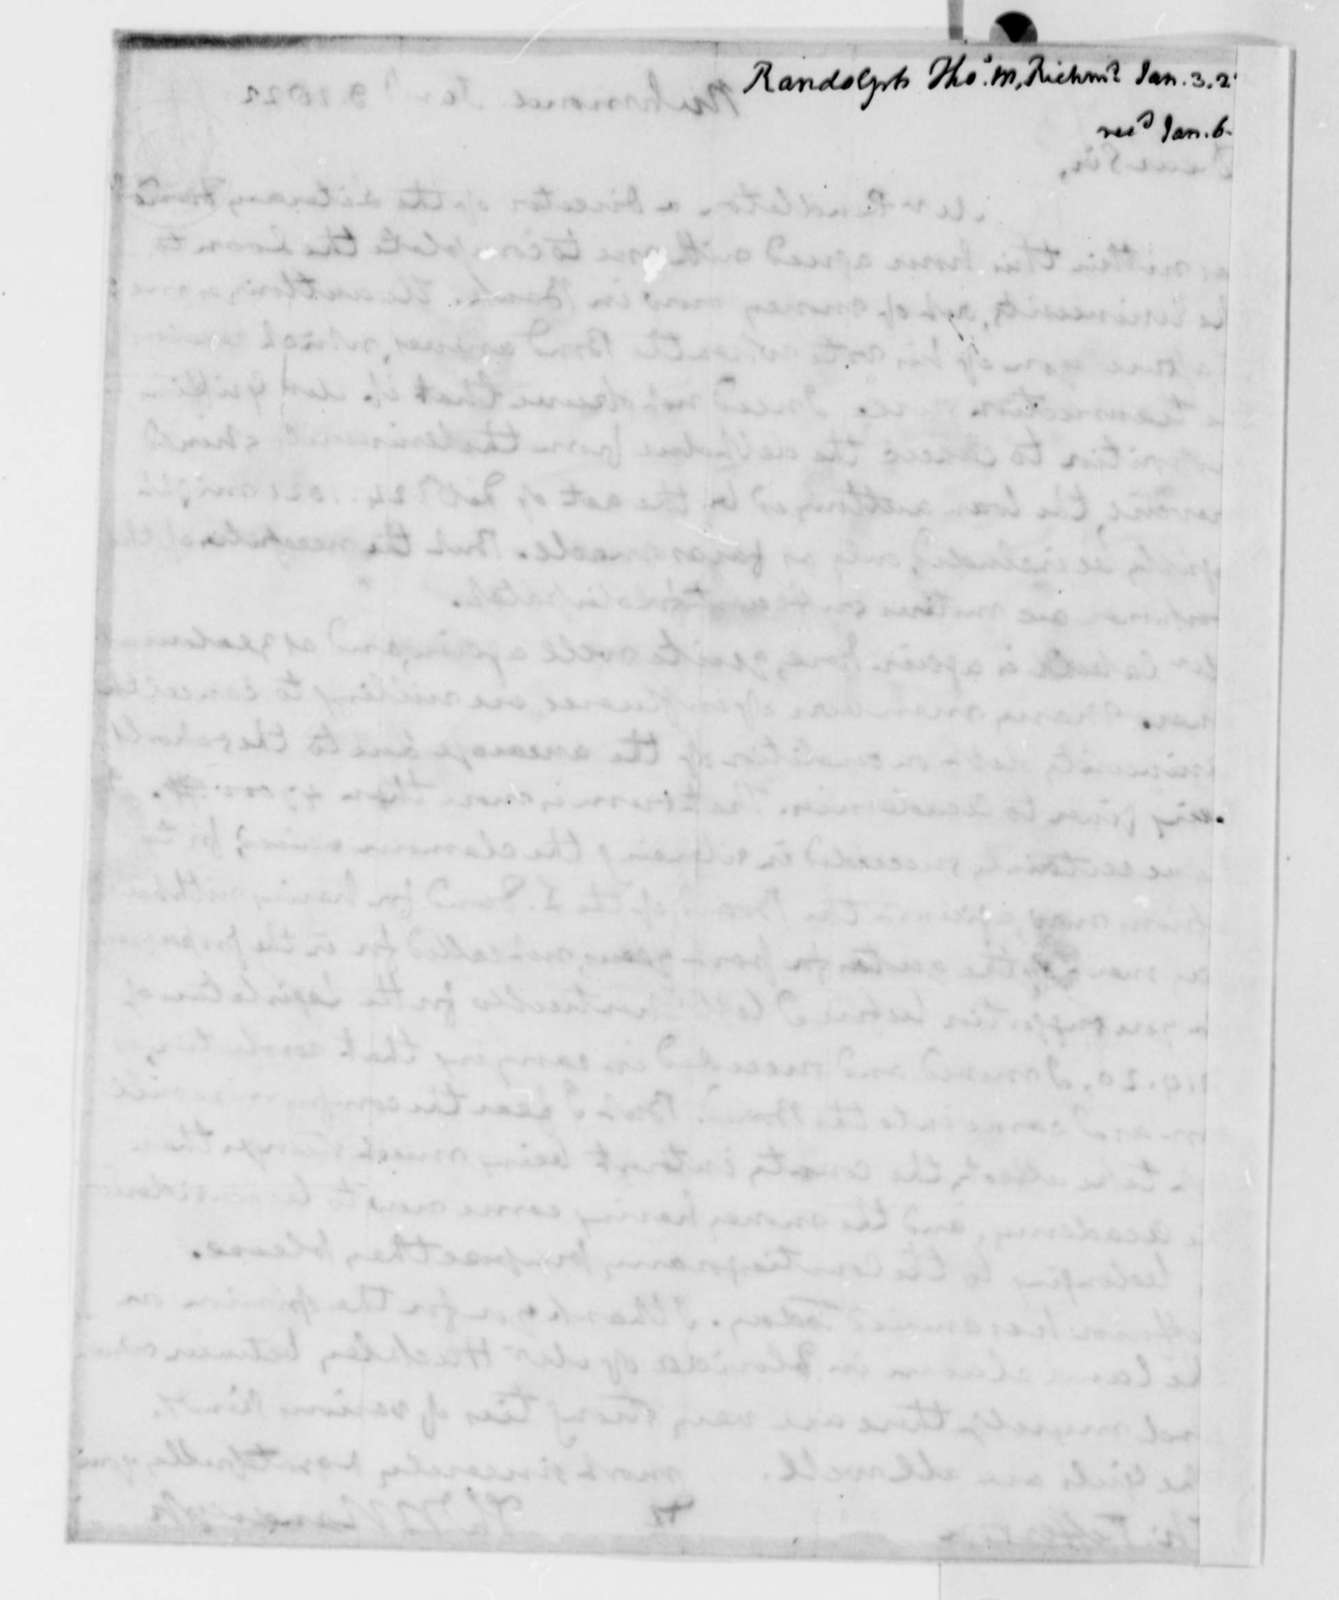 Thomas Mann Randolph, Jr. to Thomas Jefferson, January 3, 1822